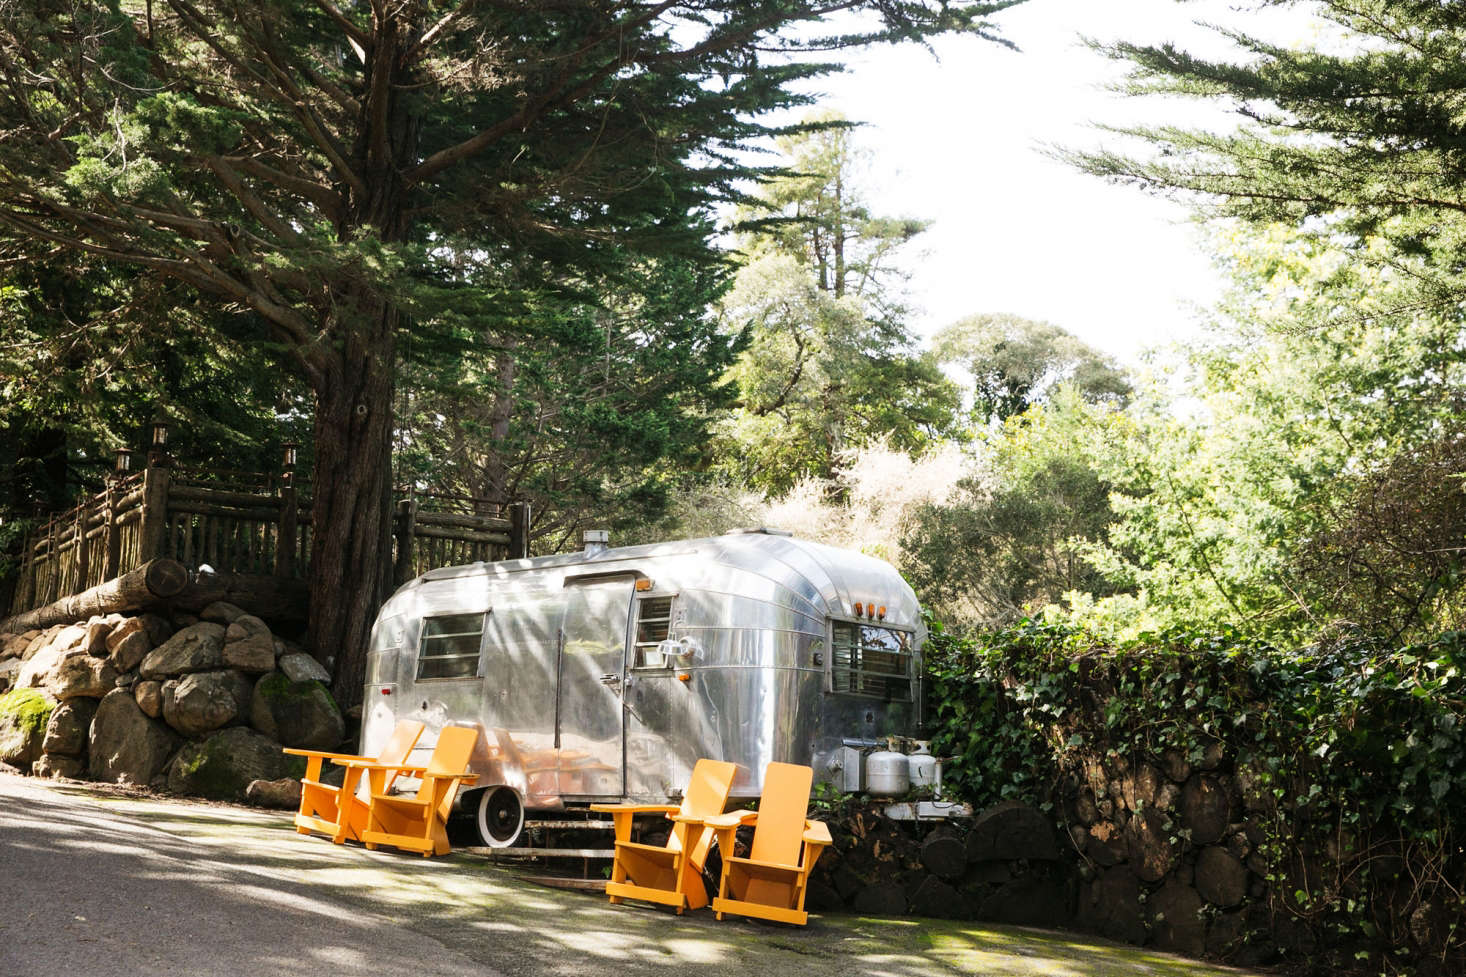 An Airstream trailer and orange lounge chairs marks the entrance to the Manka